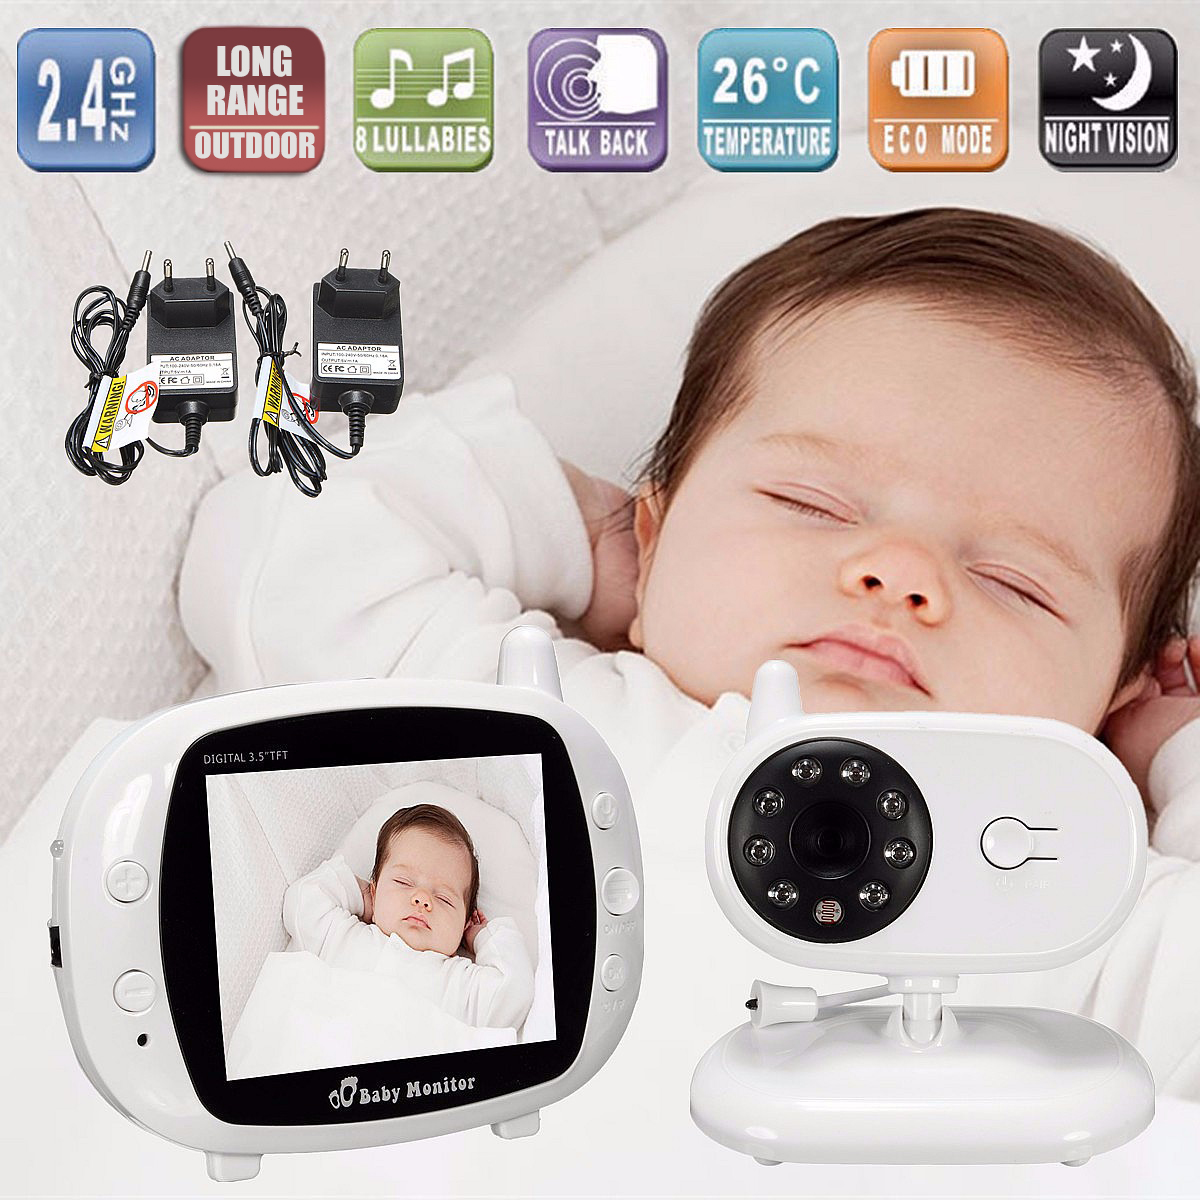 2.4G Wireless Digital 3.5 LCD Baby Monitor Wifi Camera Audio Talk Video Night Vision High Resolution Home Security